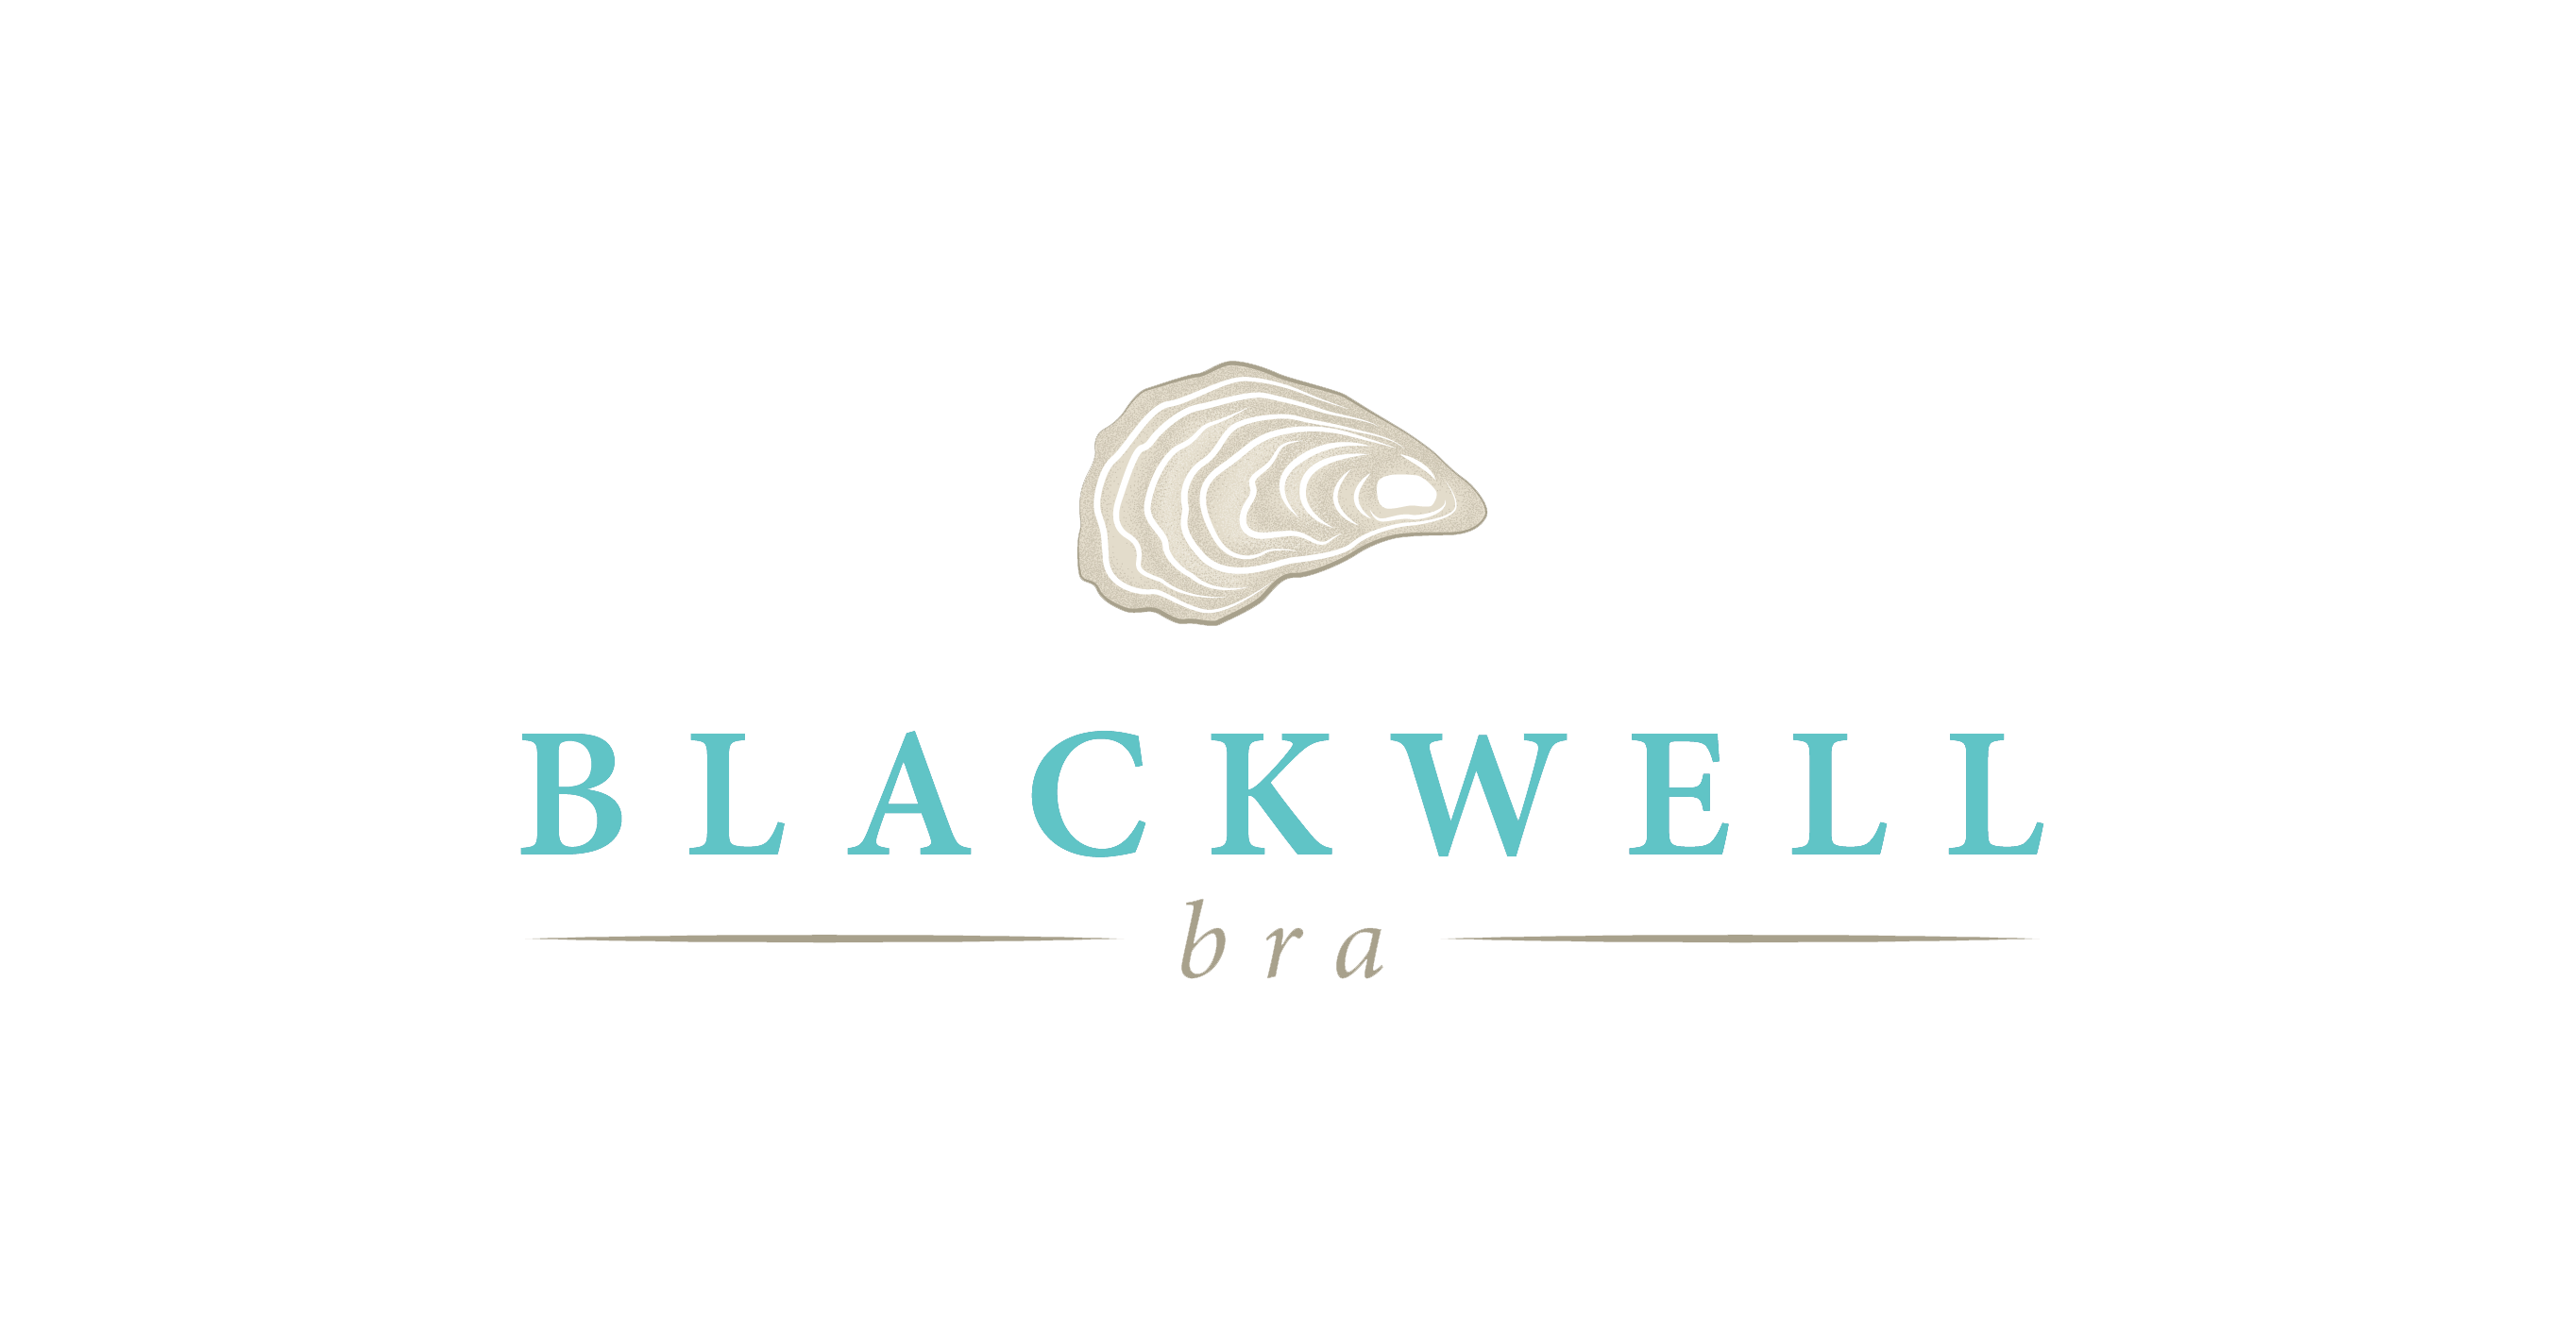 The Blackwell Bra